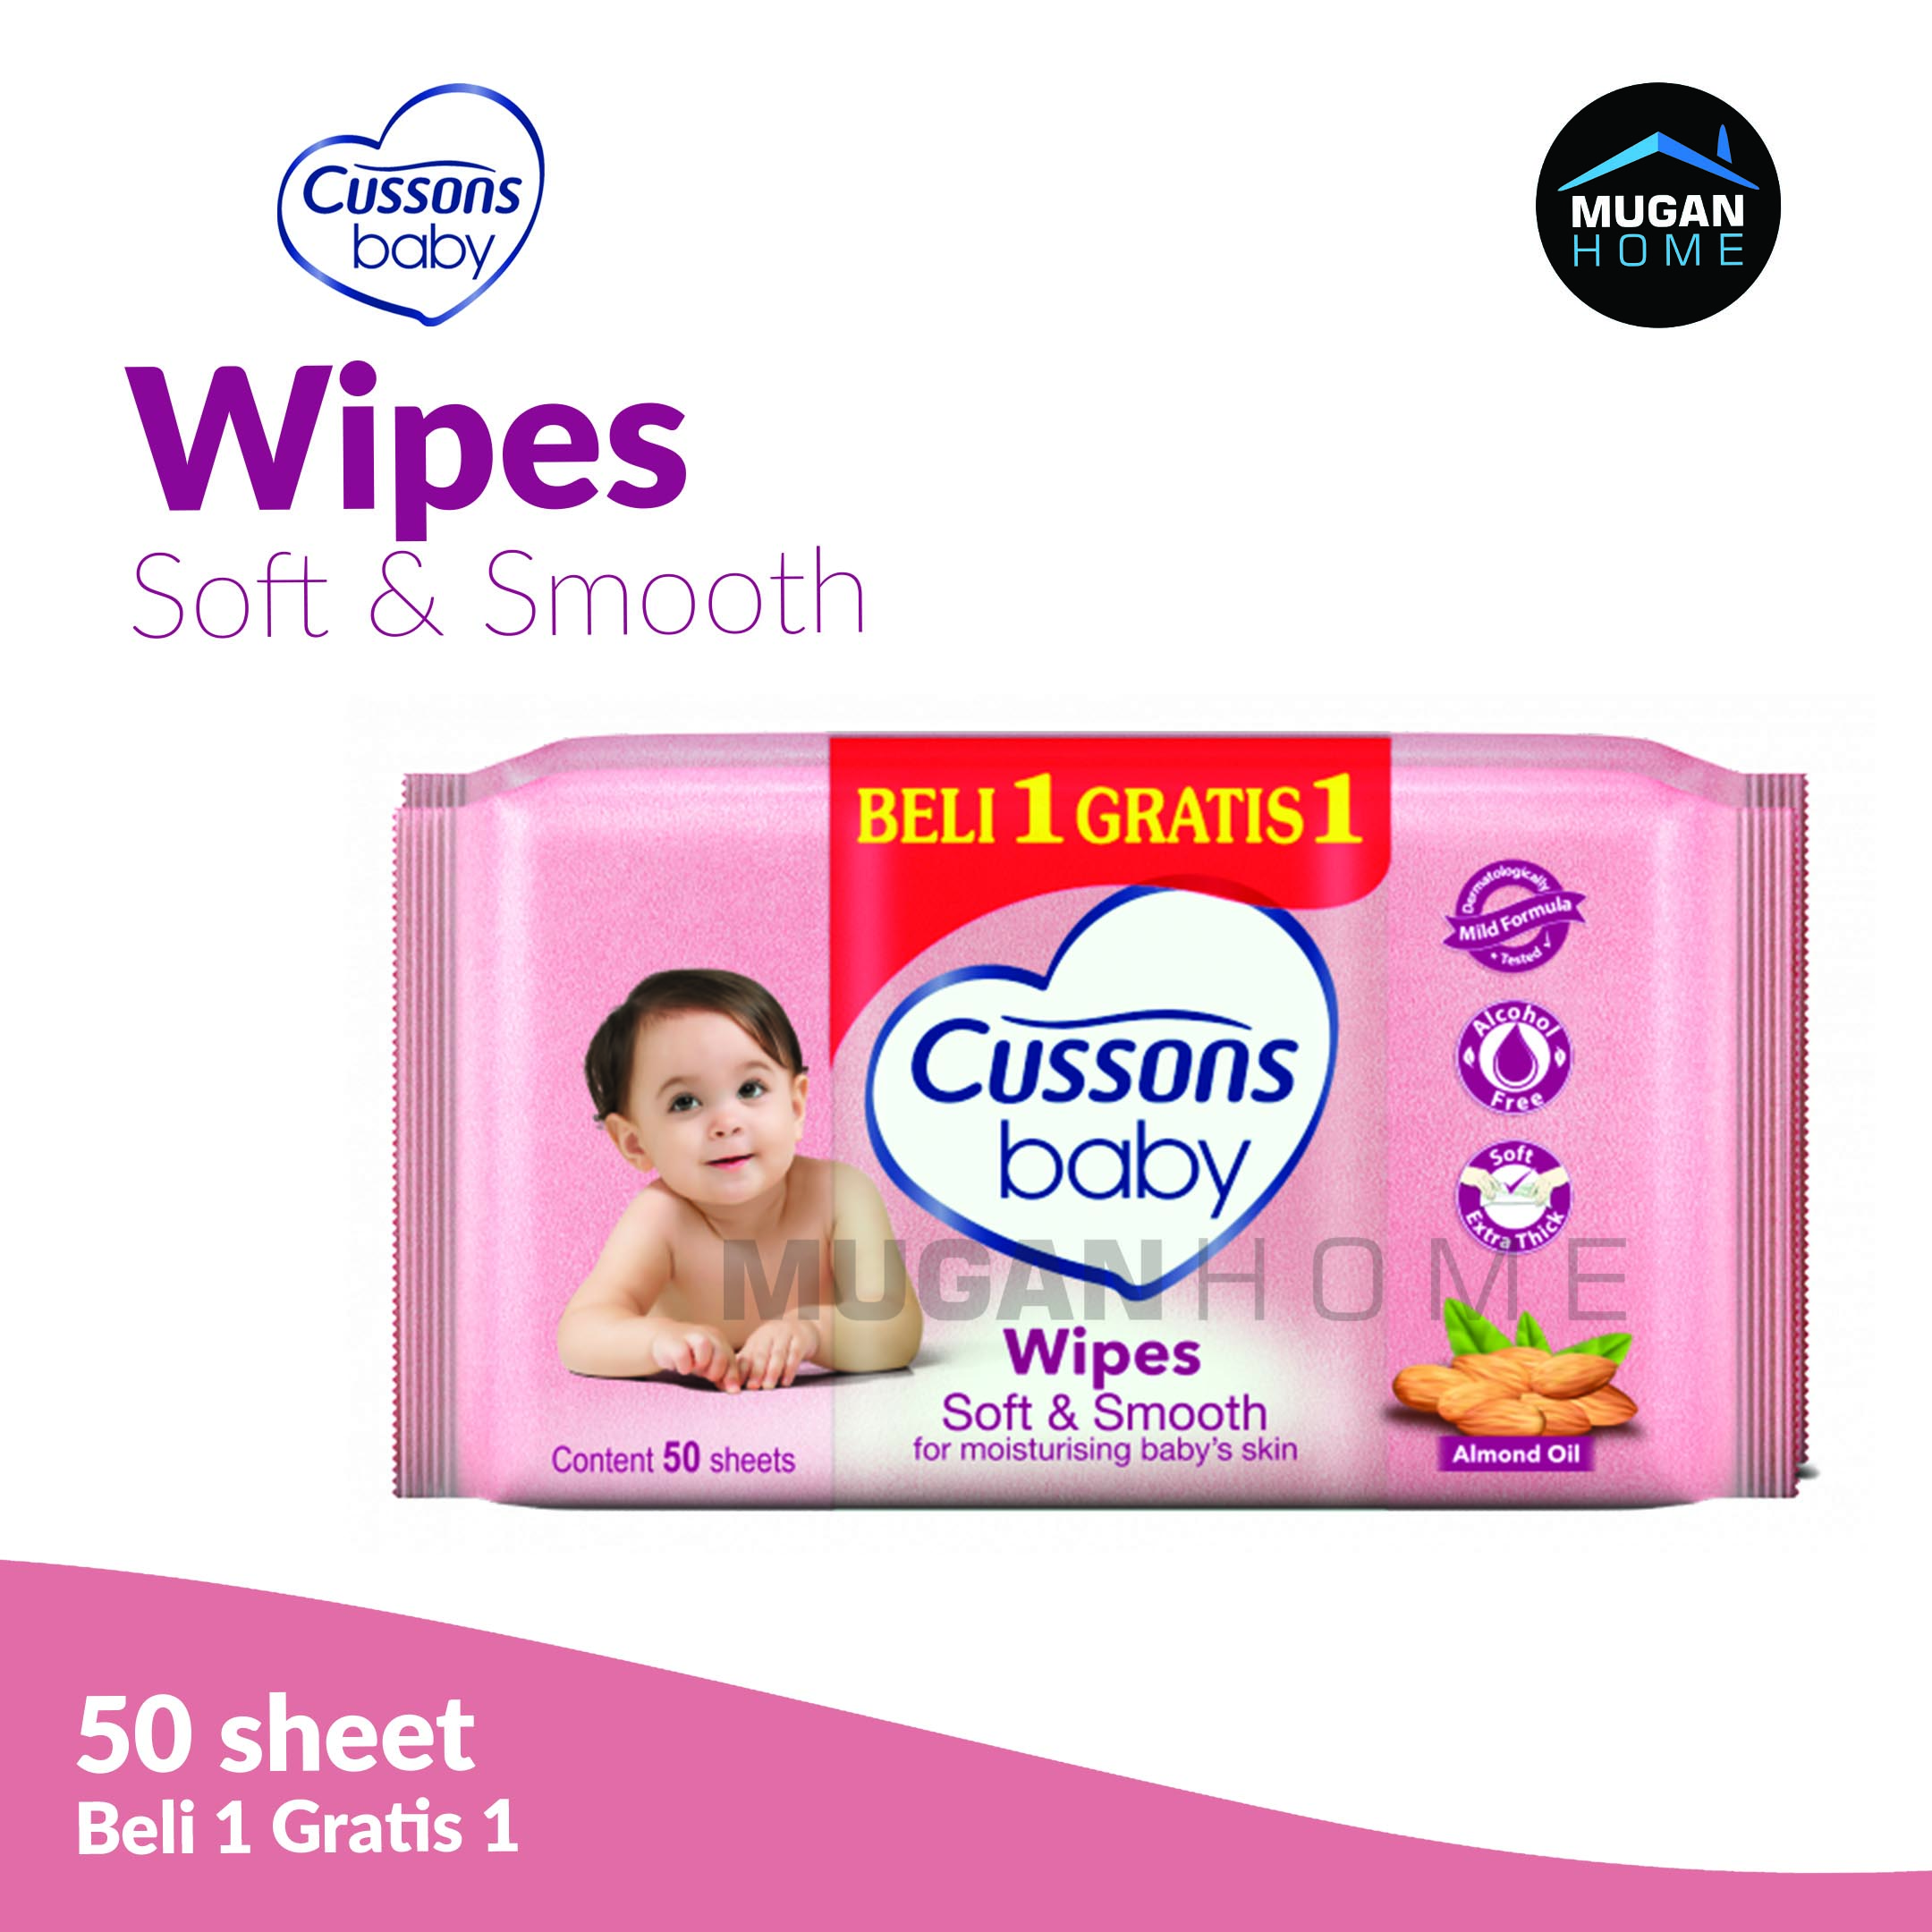 CUSSONS BABY WIPES 50SHEETS SOFT & SMOOTH BUY 1 GET 1